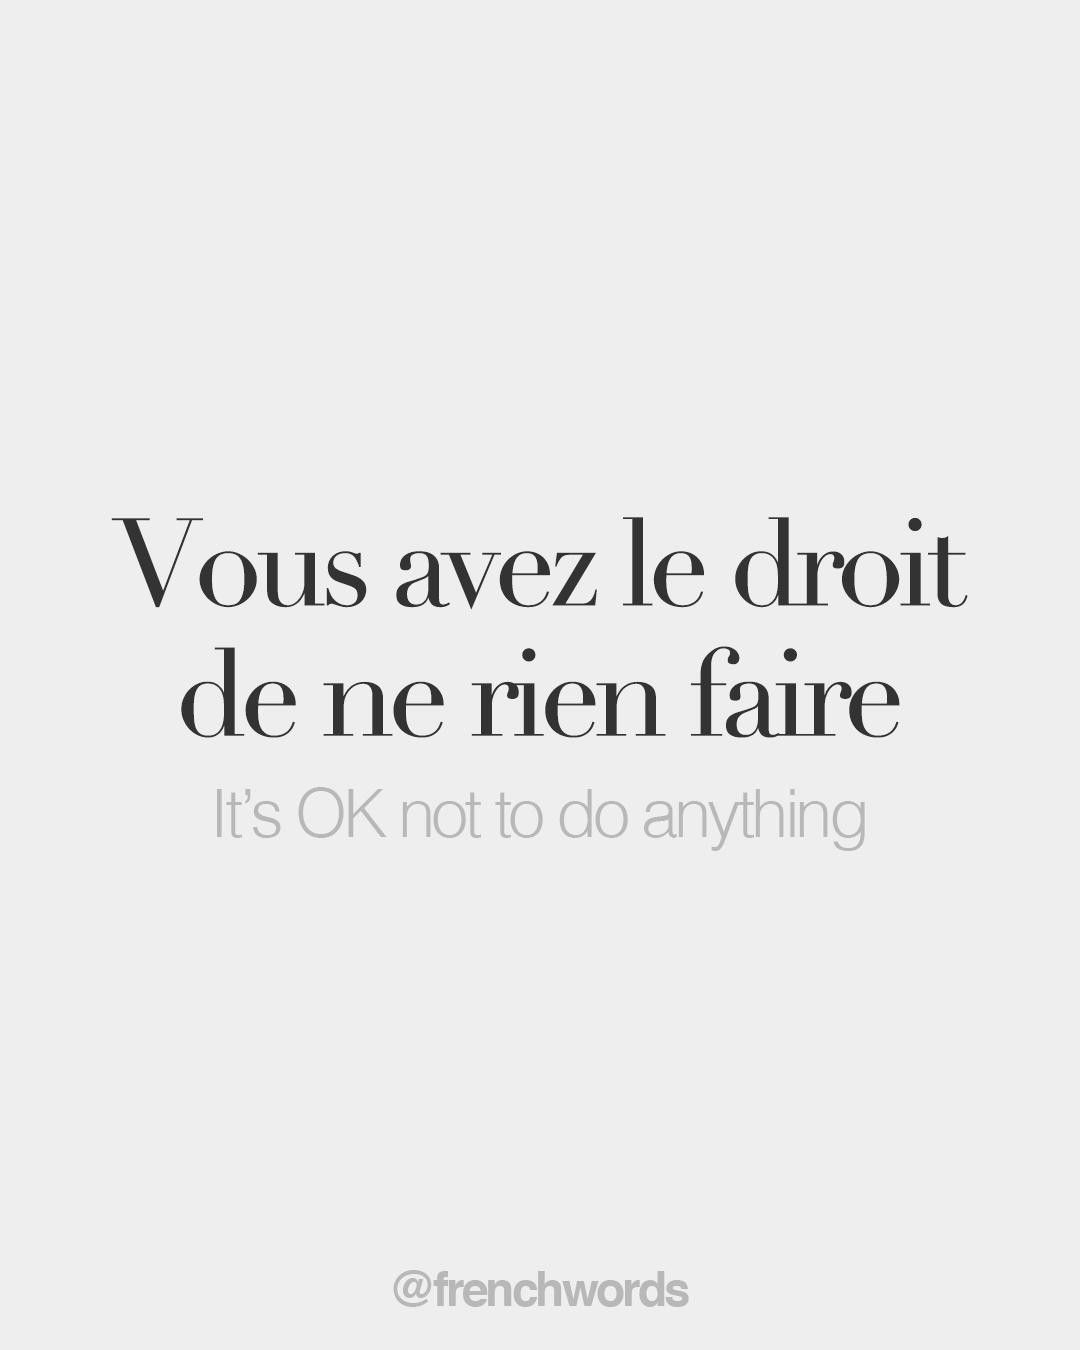 Every day, new French words to discover. Because French is beautiful.